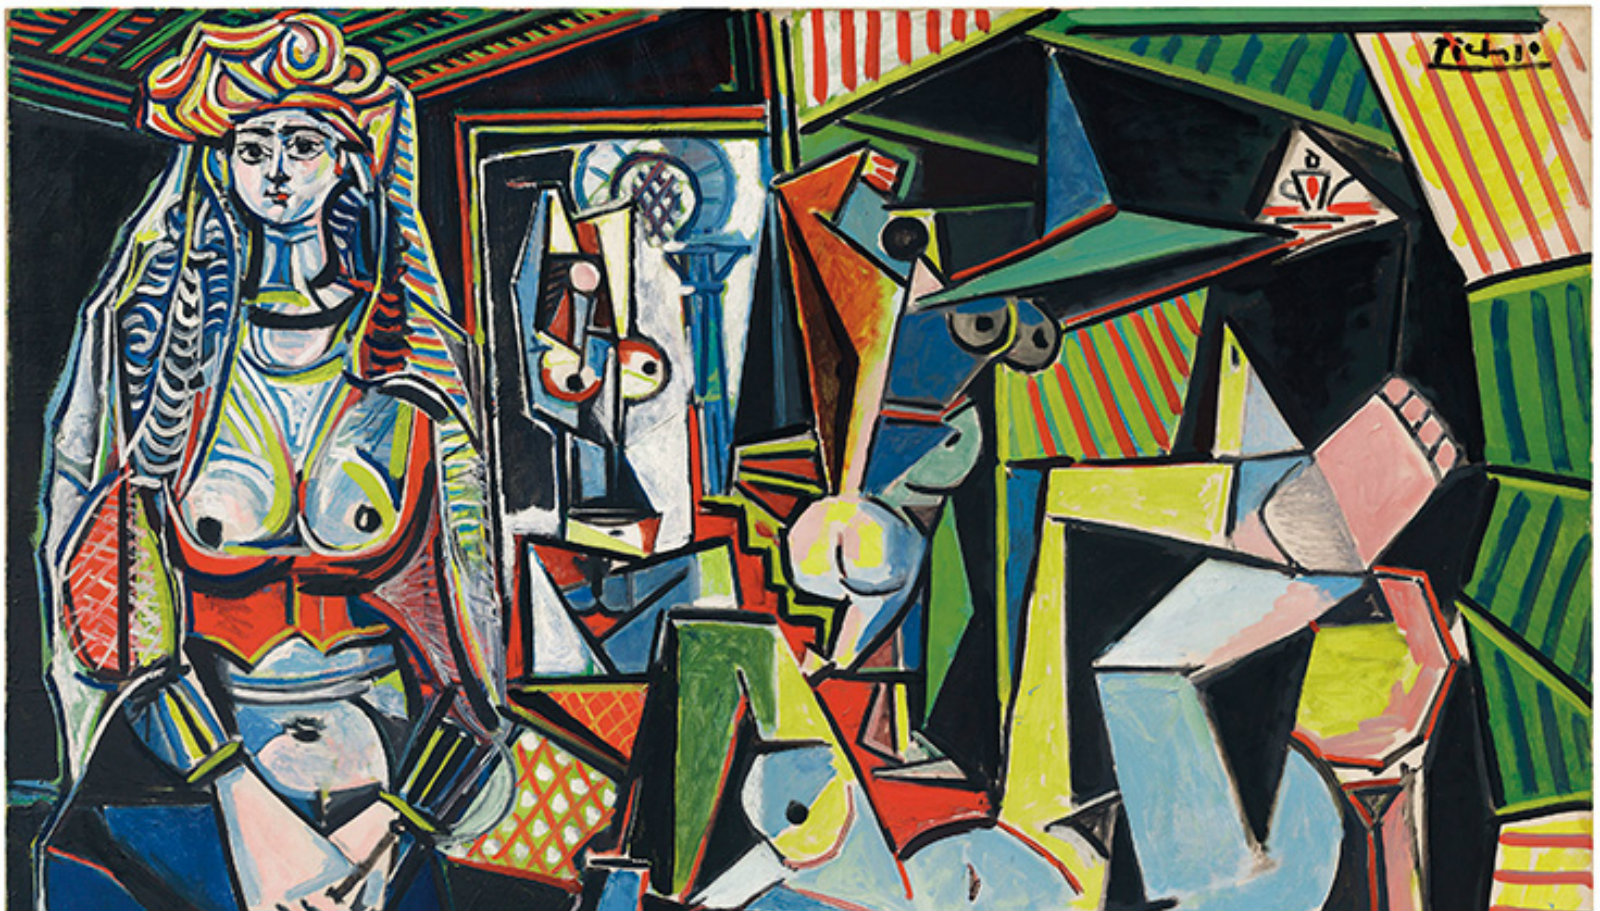 This $179 million Picasso is now the most expensive painting